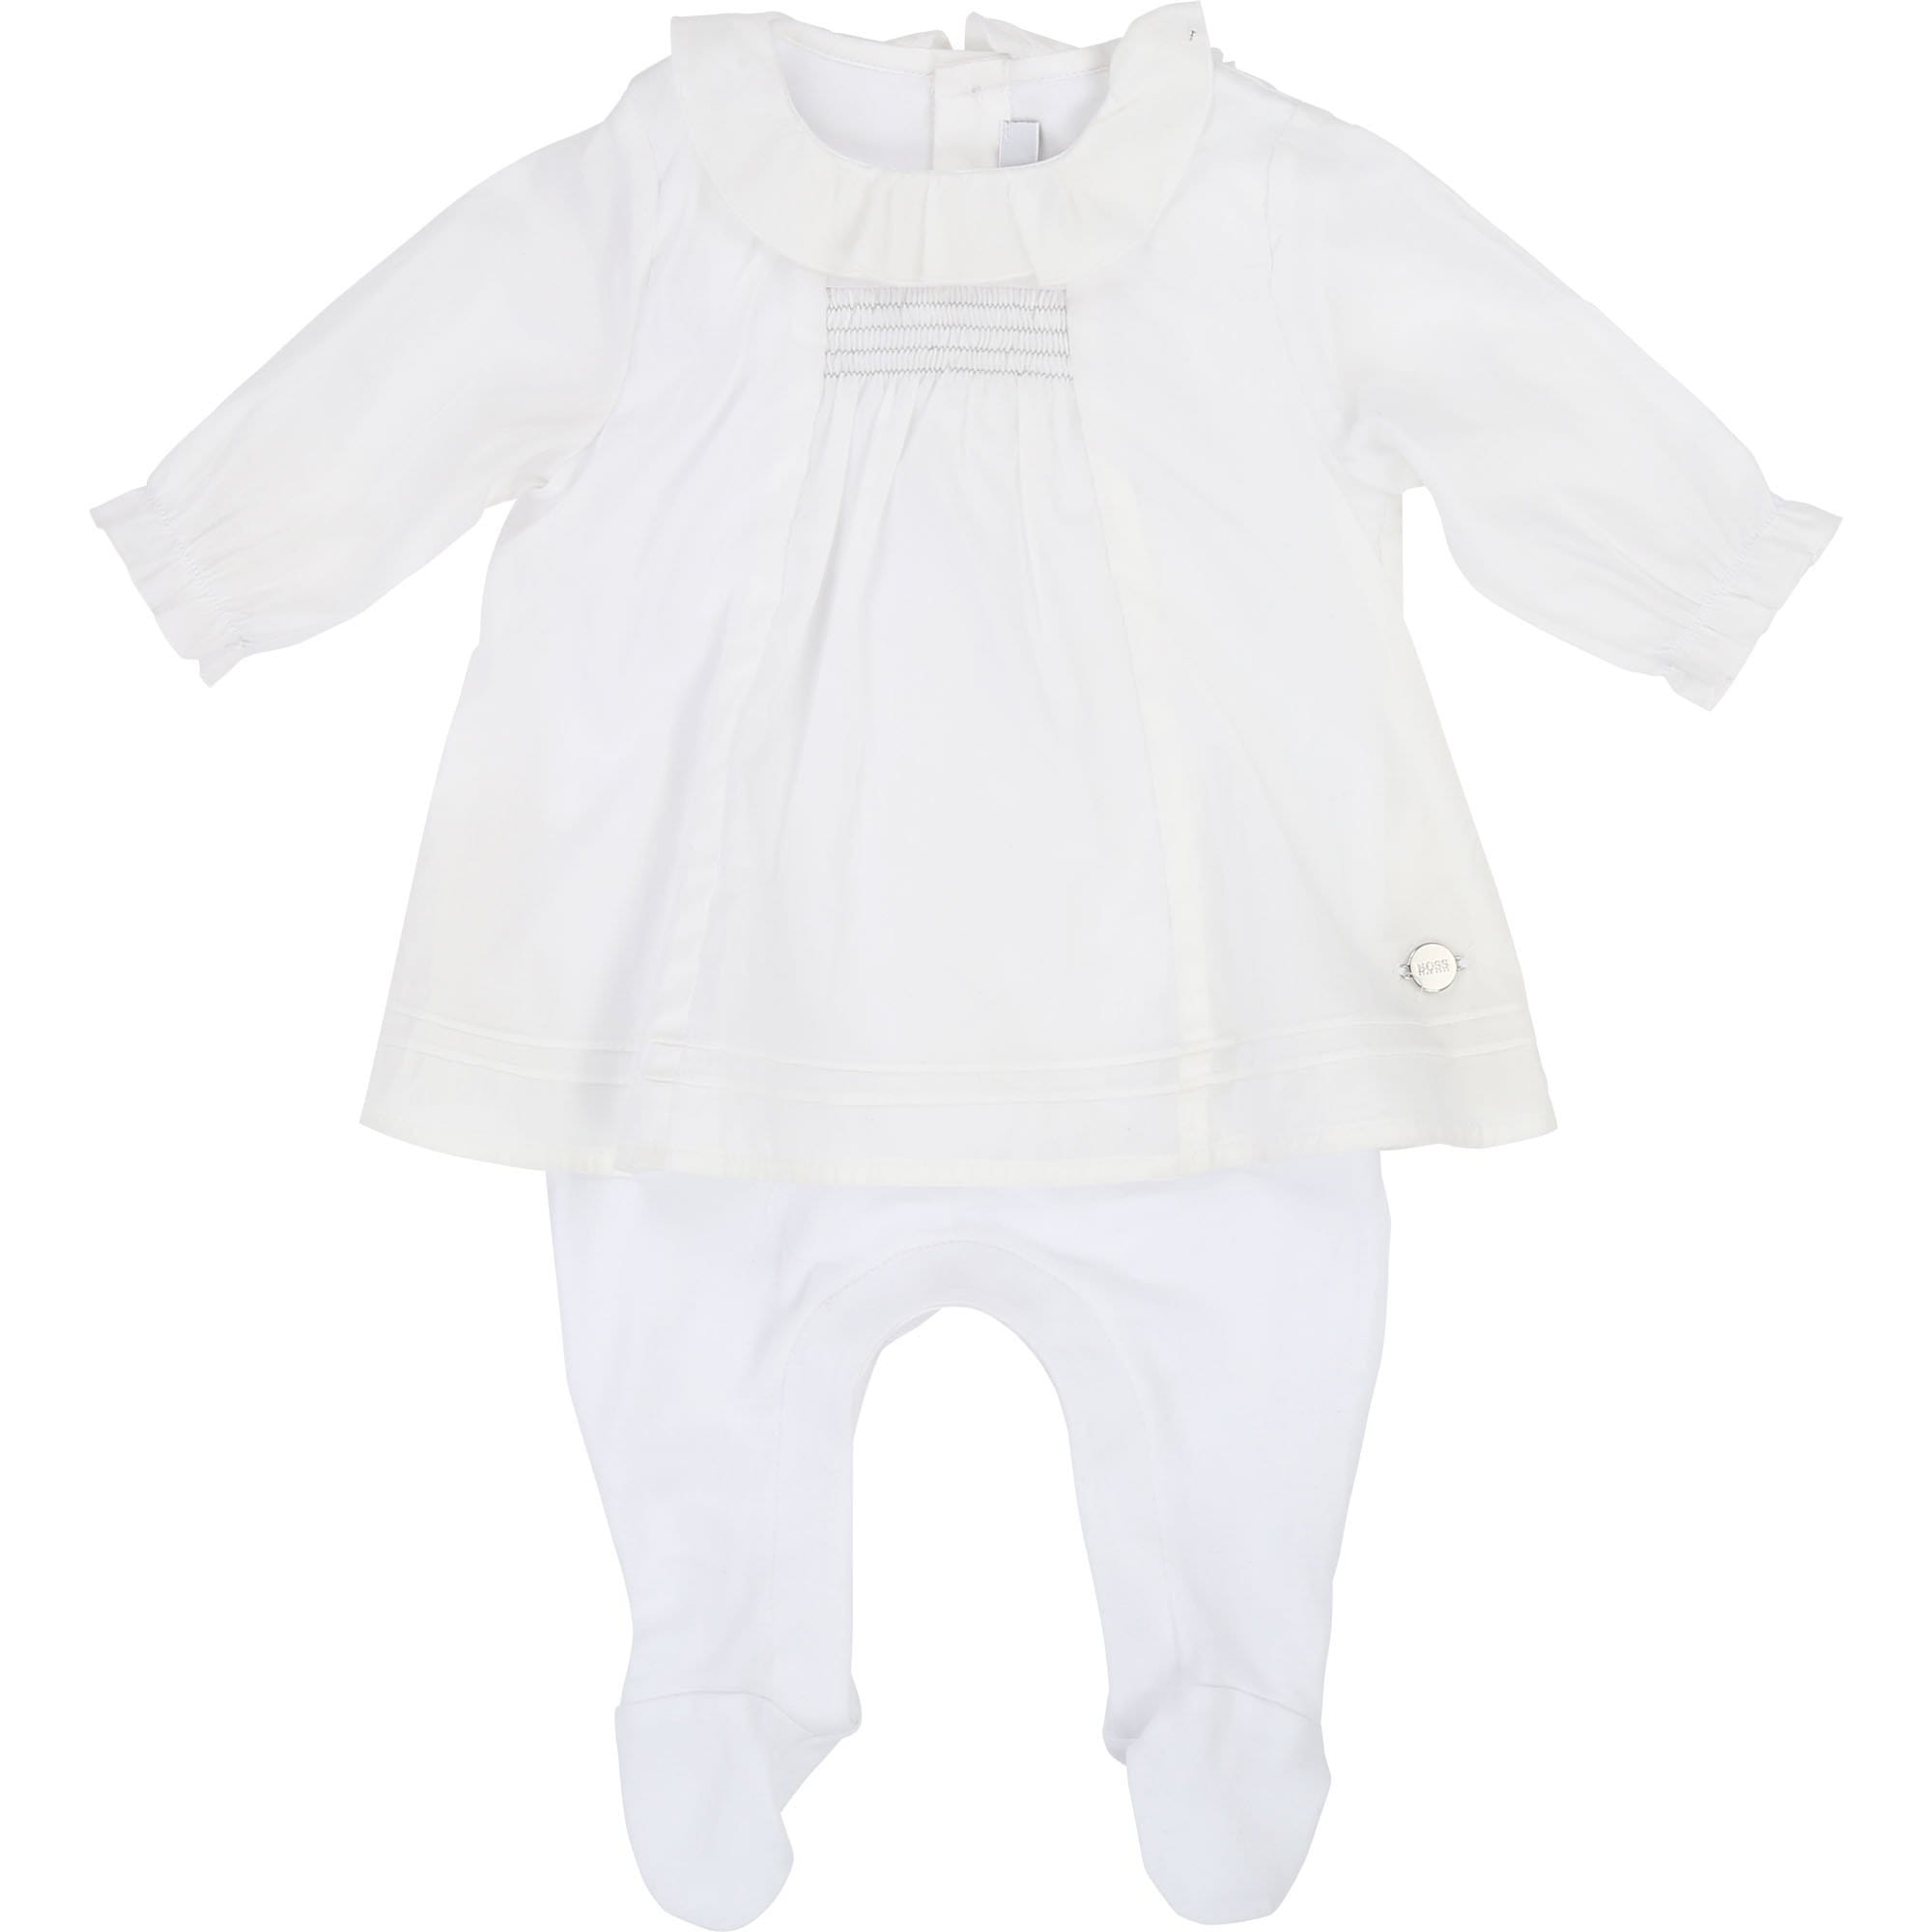 Hugo Boss Baby Girl Romper White (4693844754563)